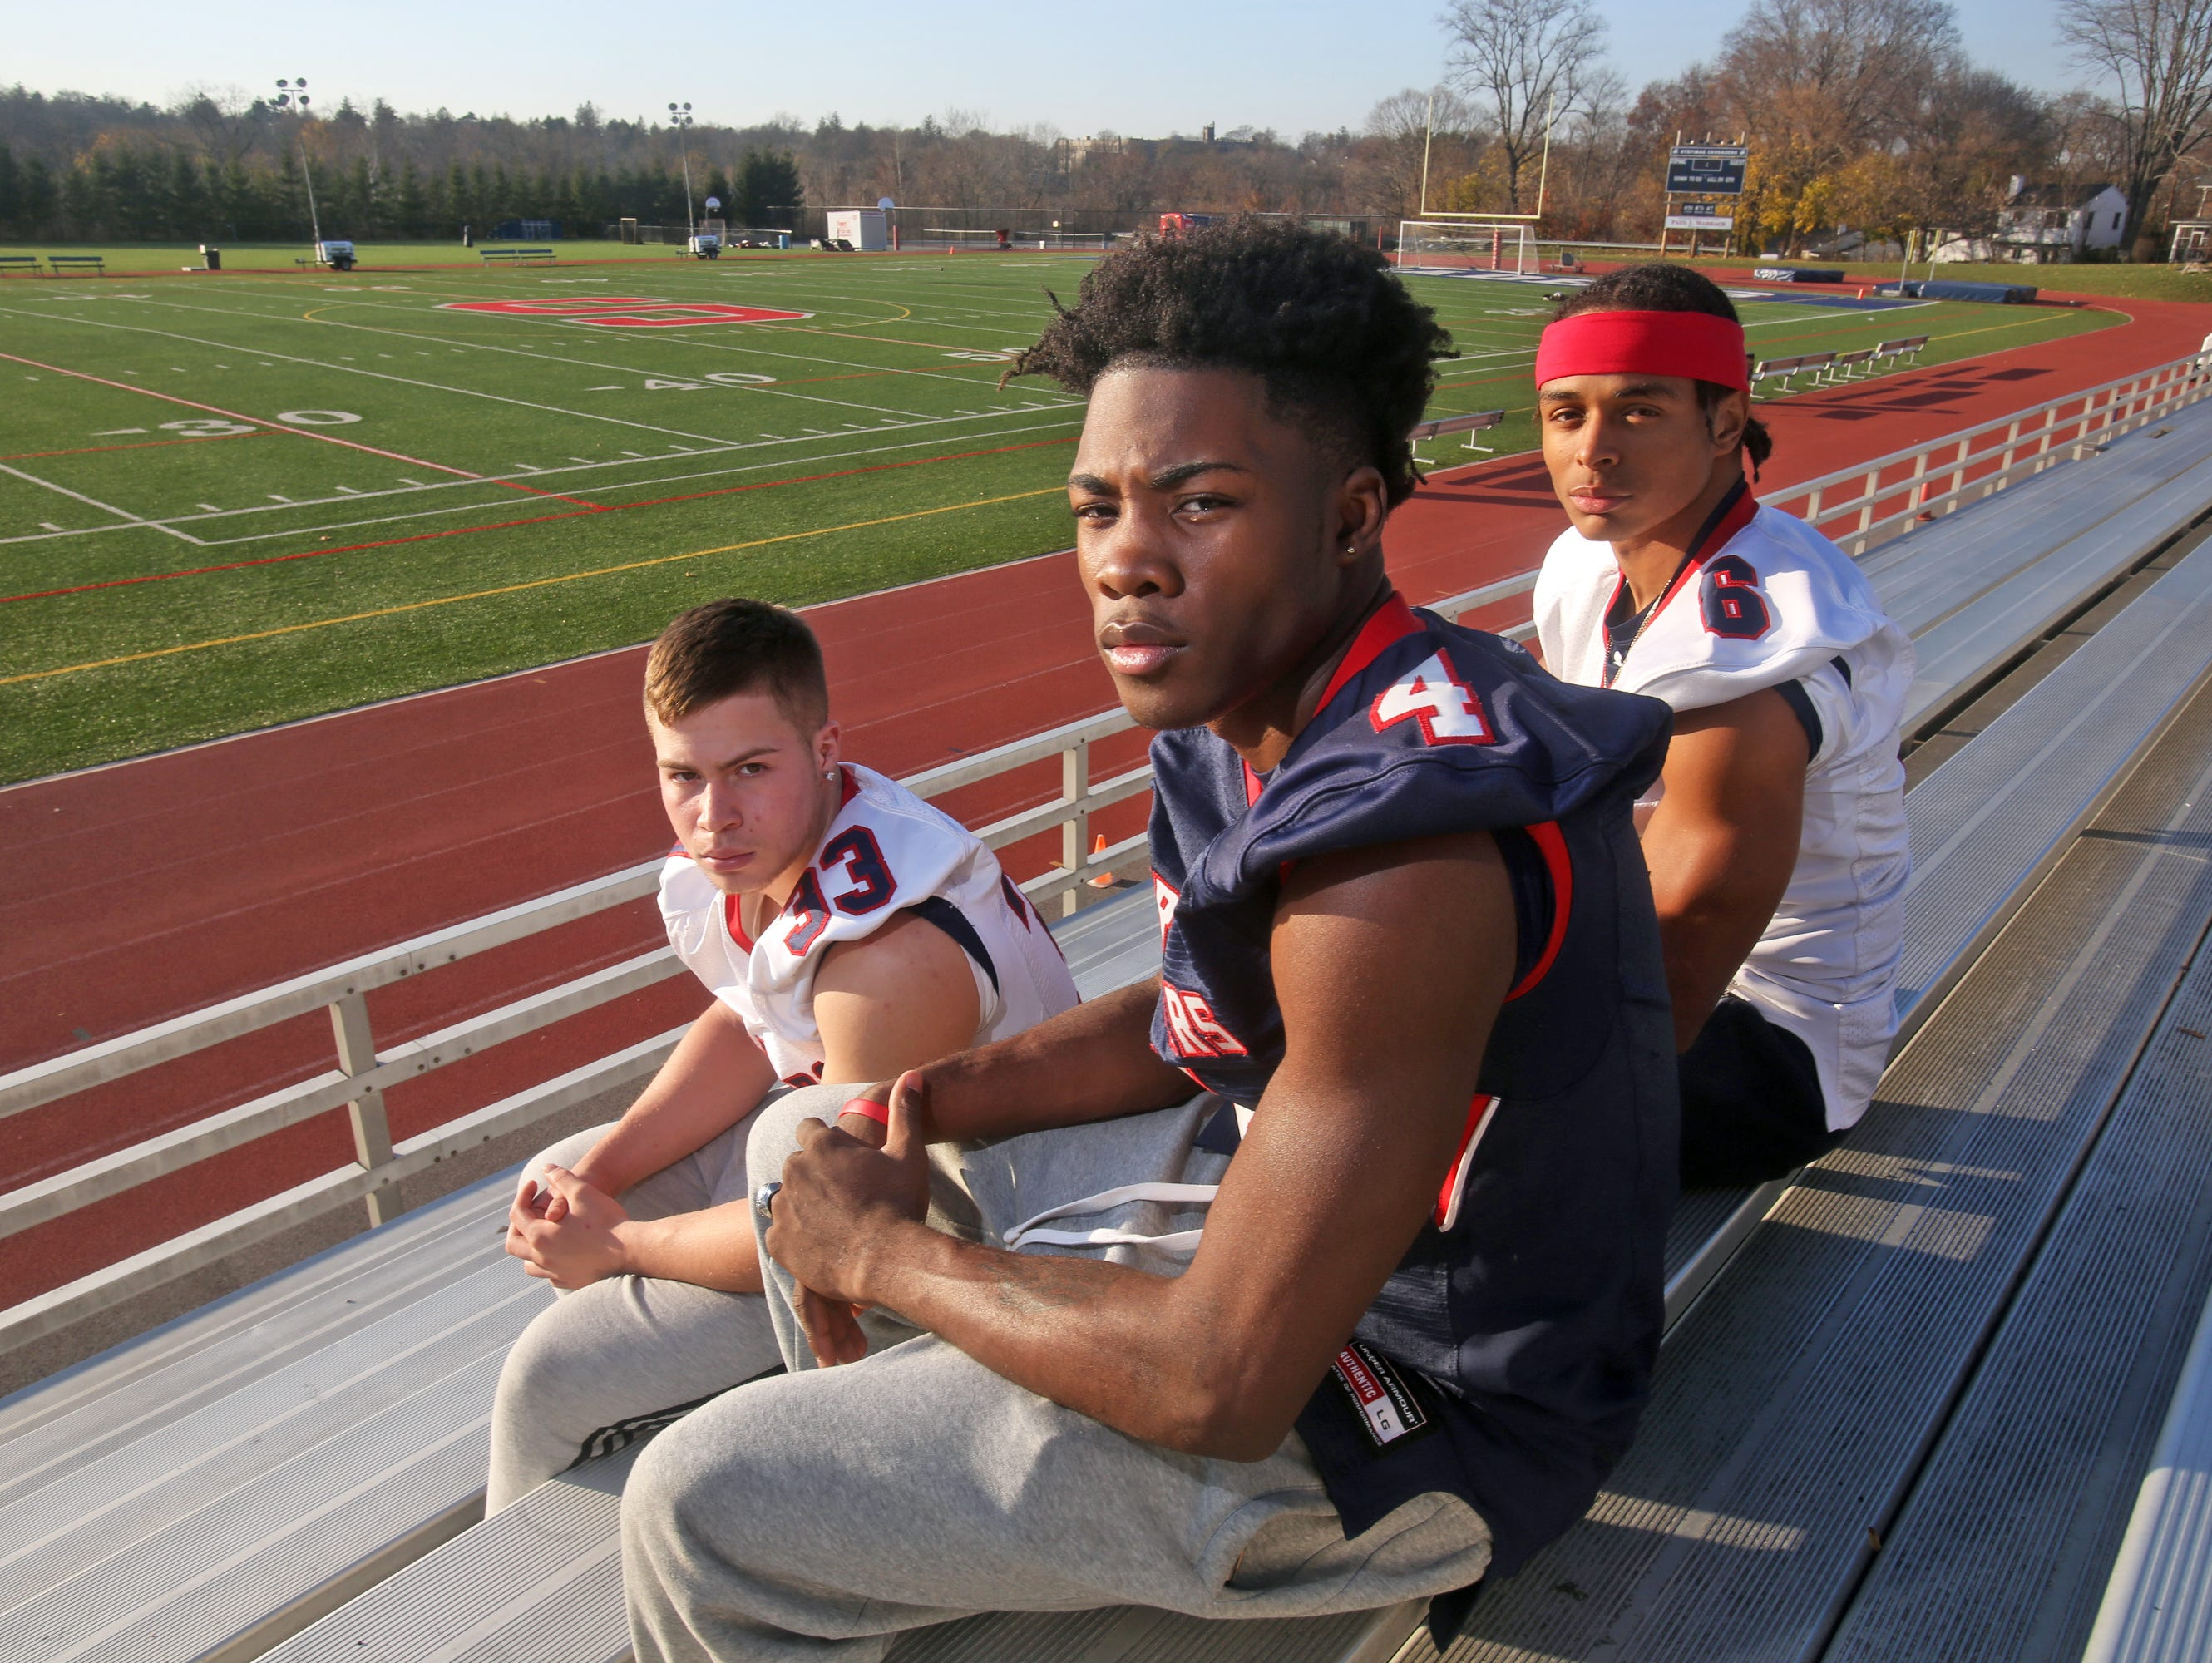 Stepinac High School football players, Daniel Negron, left, Tyquell Fields, and T.J. Morrison will lead Stepinac as they play St. Francis in the second annual CHSAA state championship at Grand Island High School on Nov. 28, 2015. The Crusaders lost in the same game last year. The players were photographed Nov. 25, 2015.